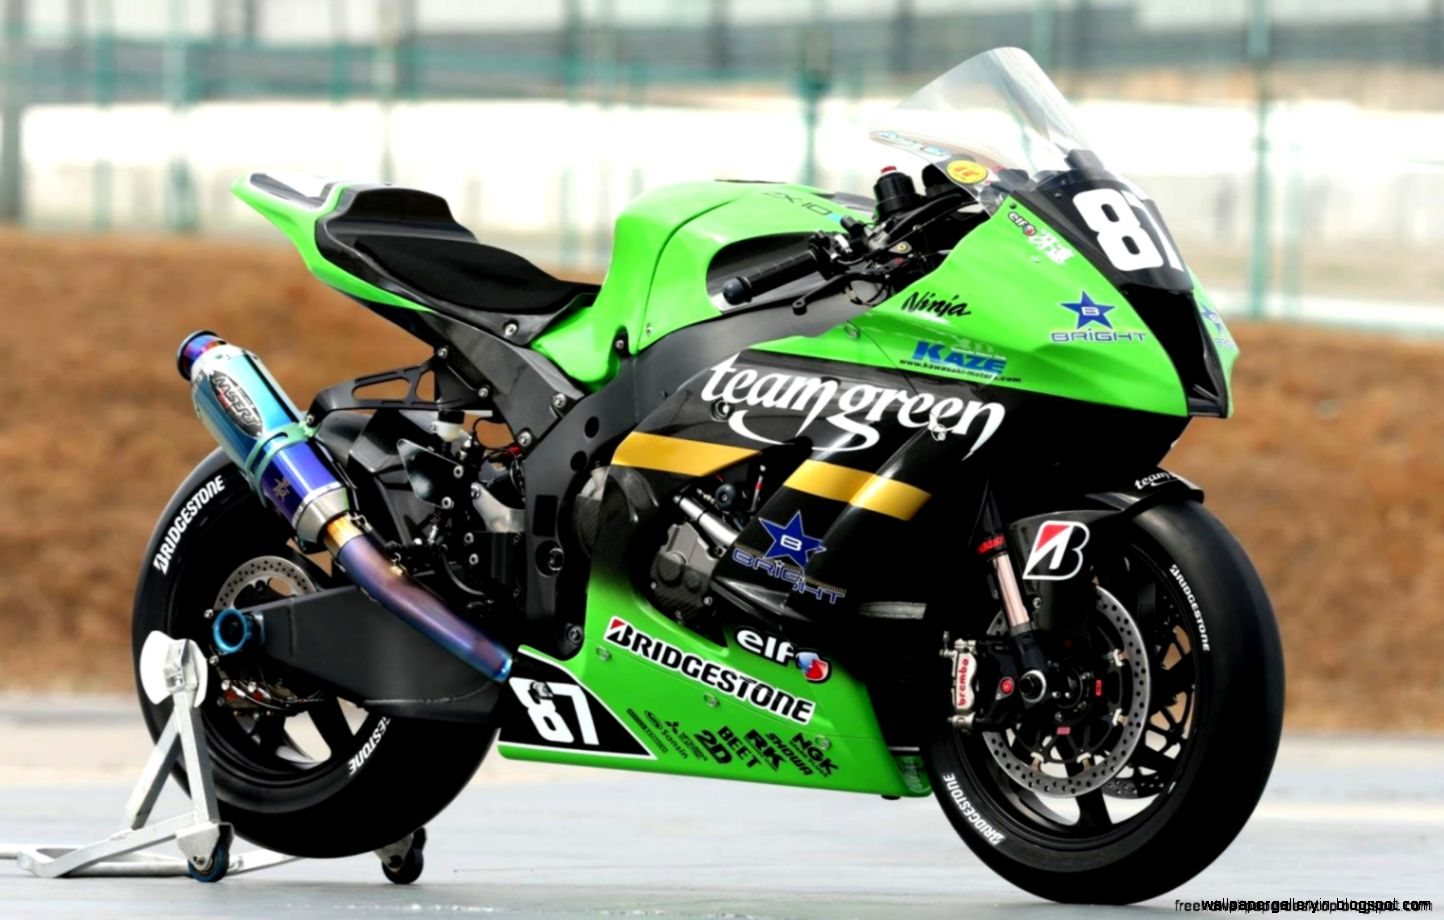 Superbike Kawasaki Jsb Hd  Free High Definition Wallpapers